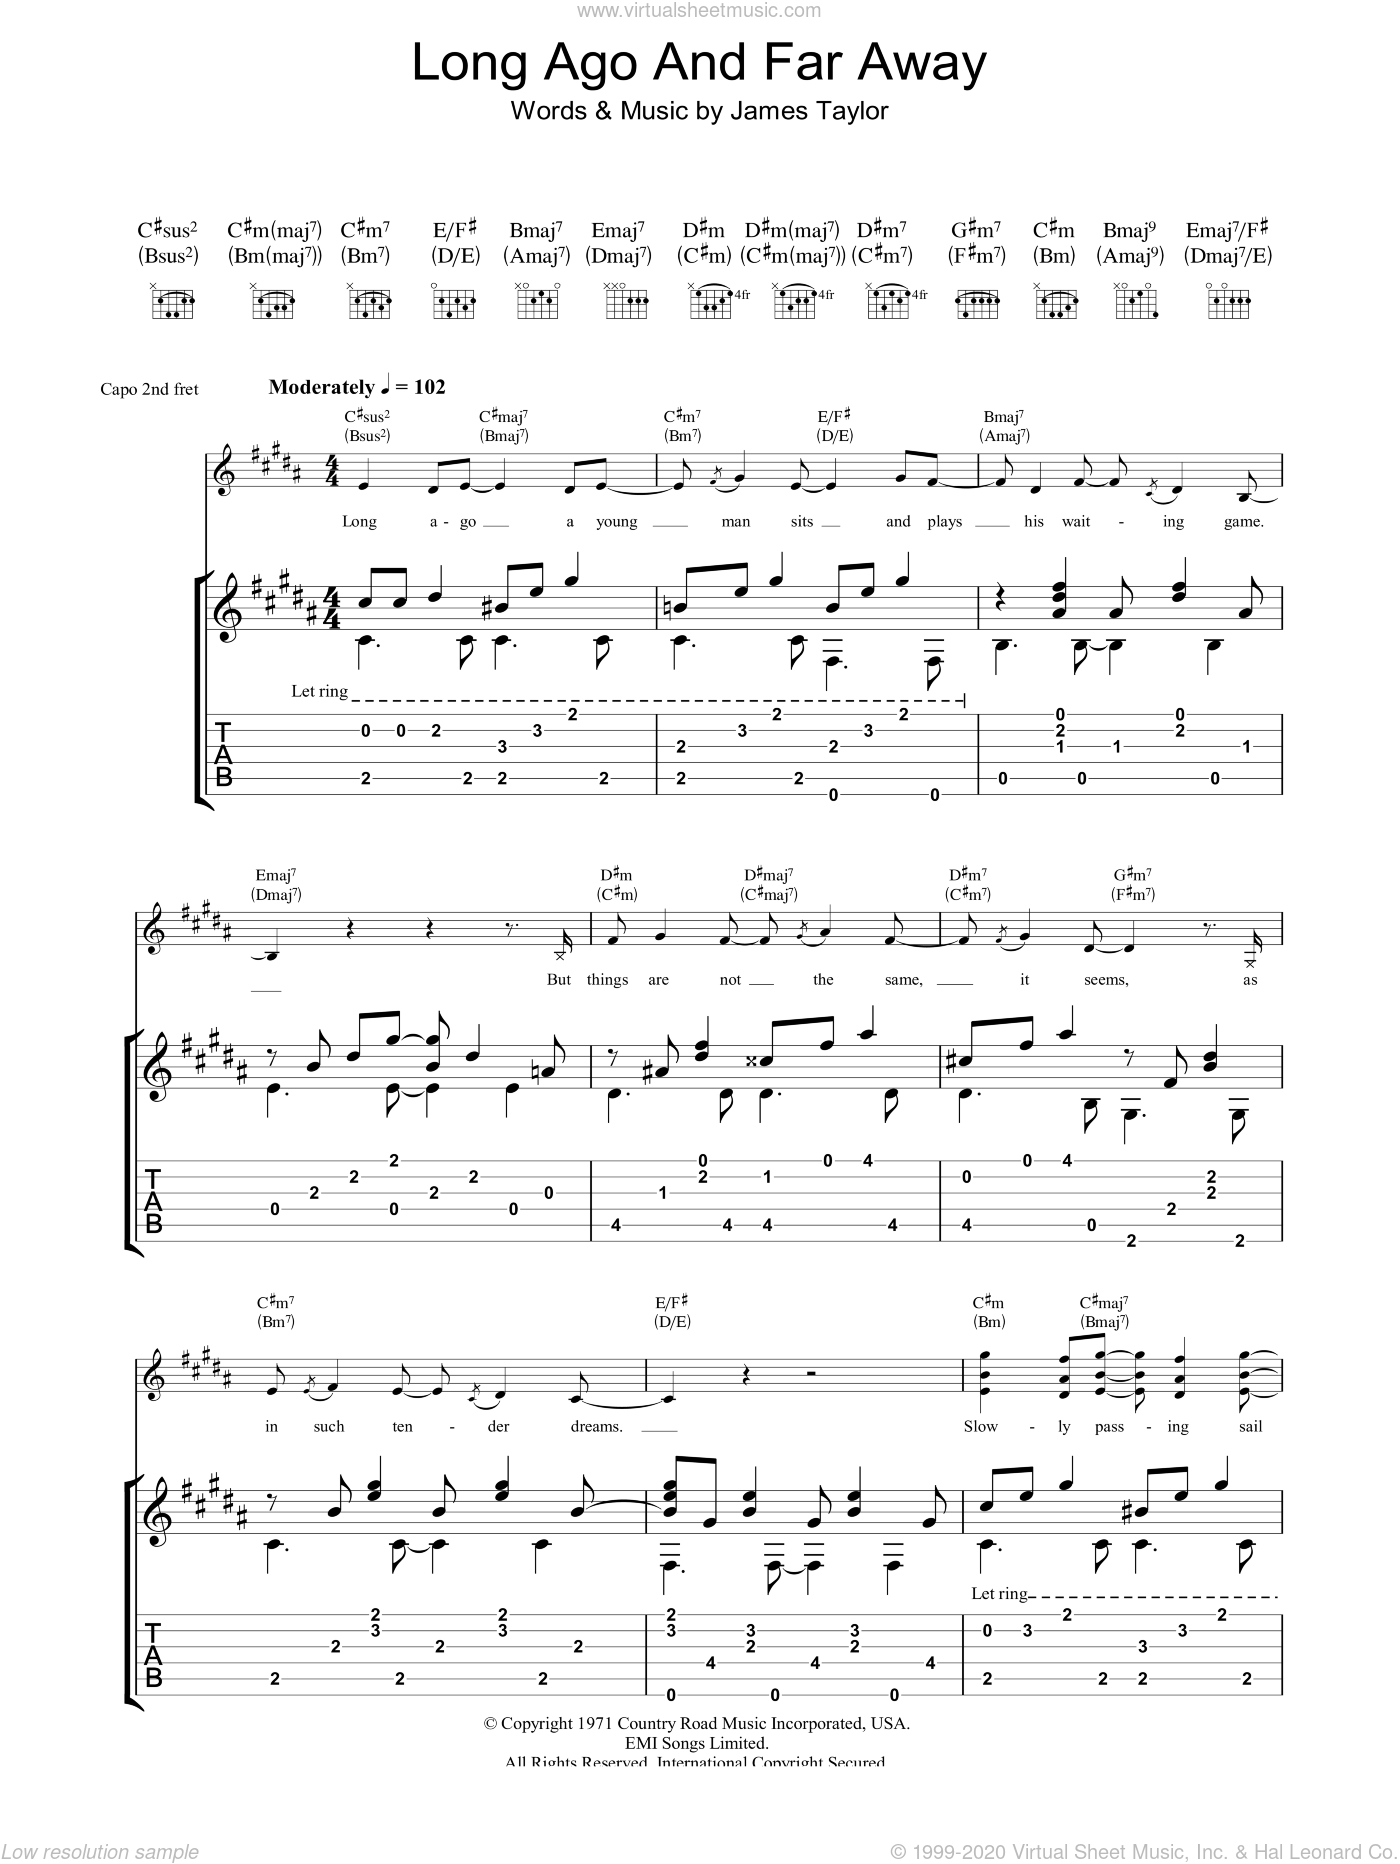 Long Ago And Far Away sheet music for guitar (tablature) by James Taylor, intermediate skill level